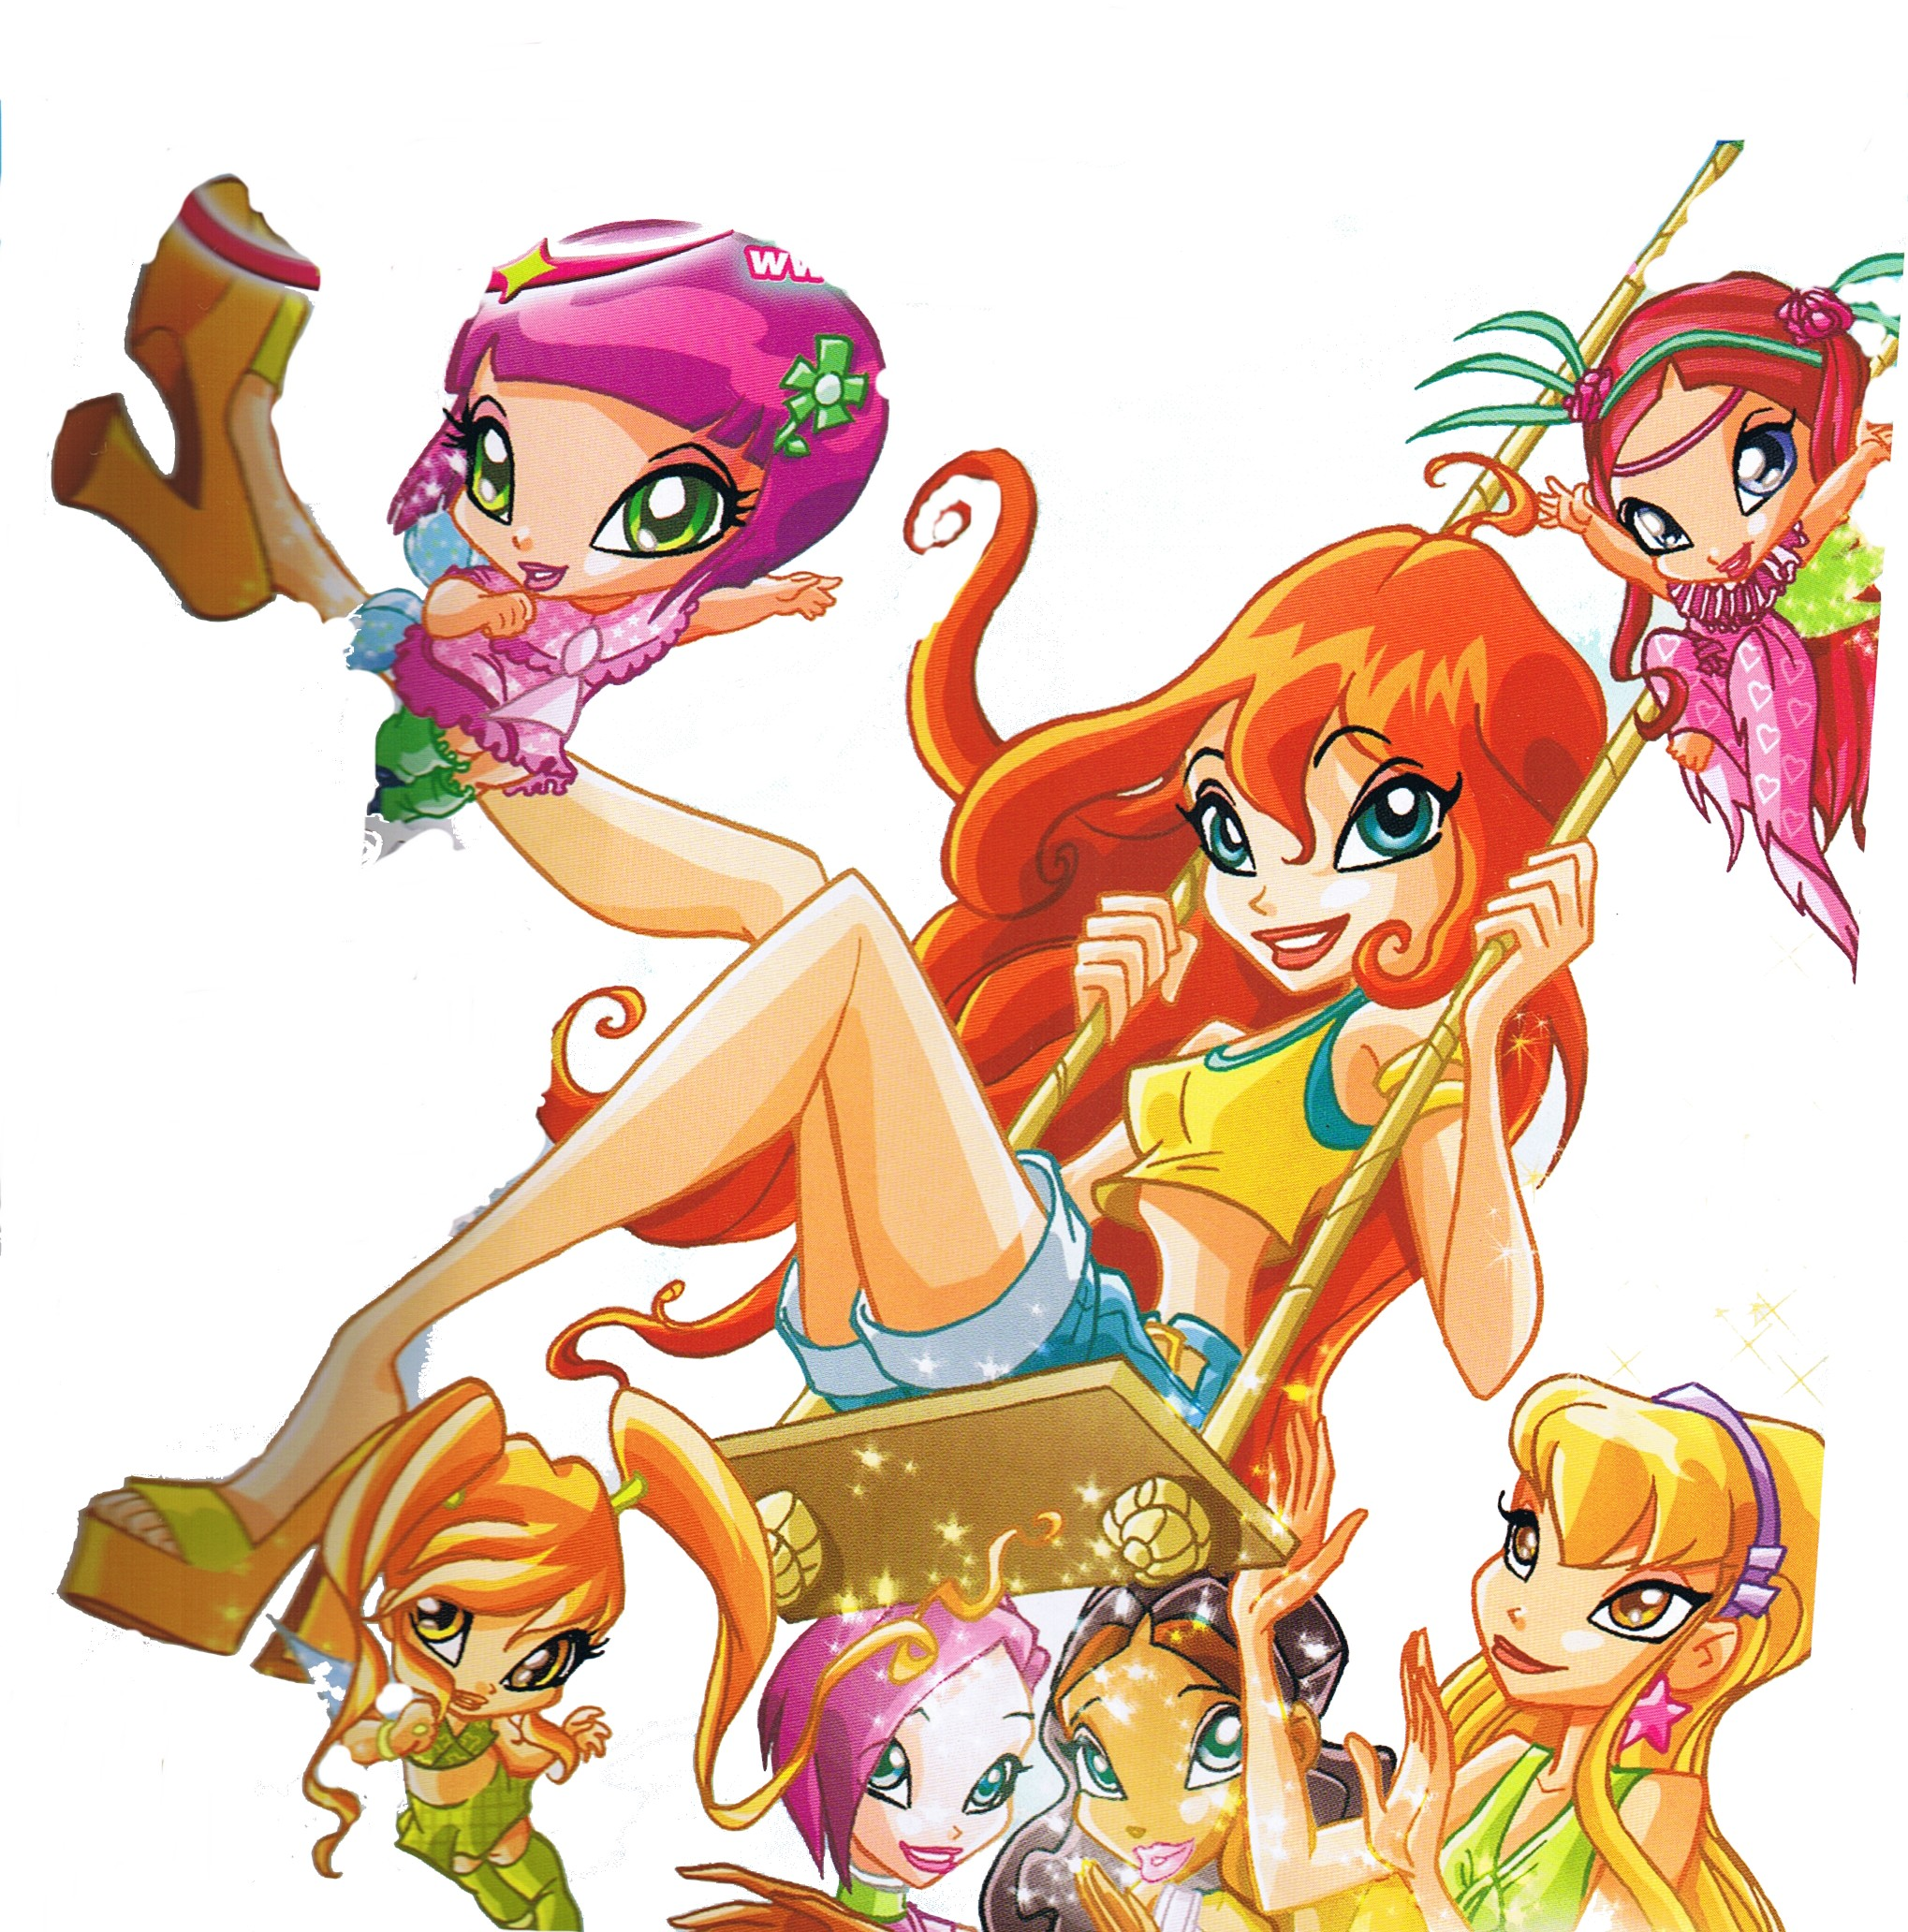 Винкс winx club bloom 236 2038x2064px 910kb